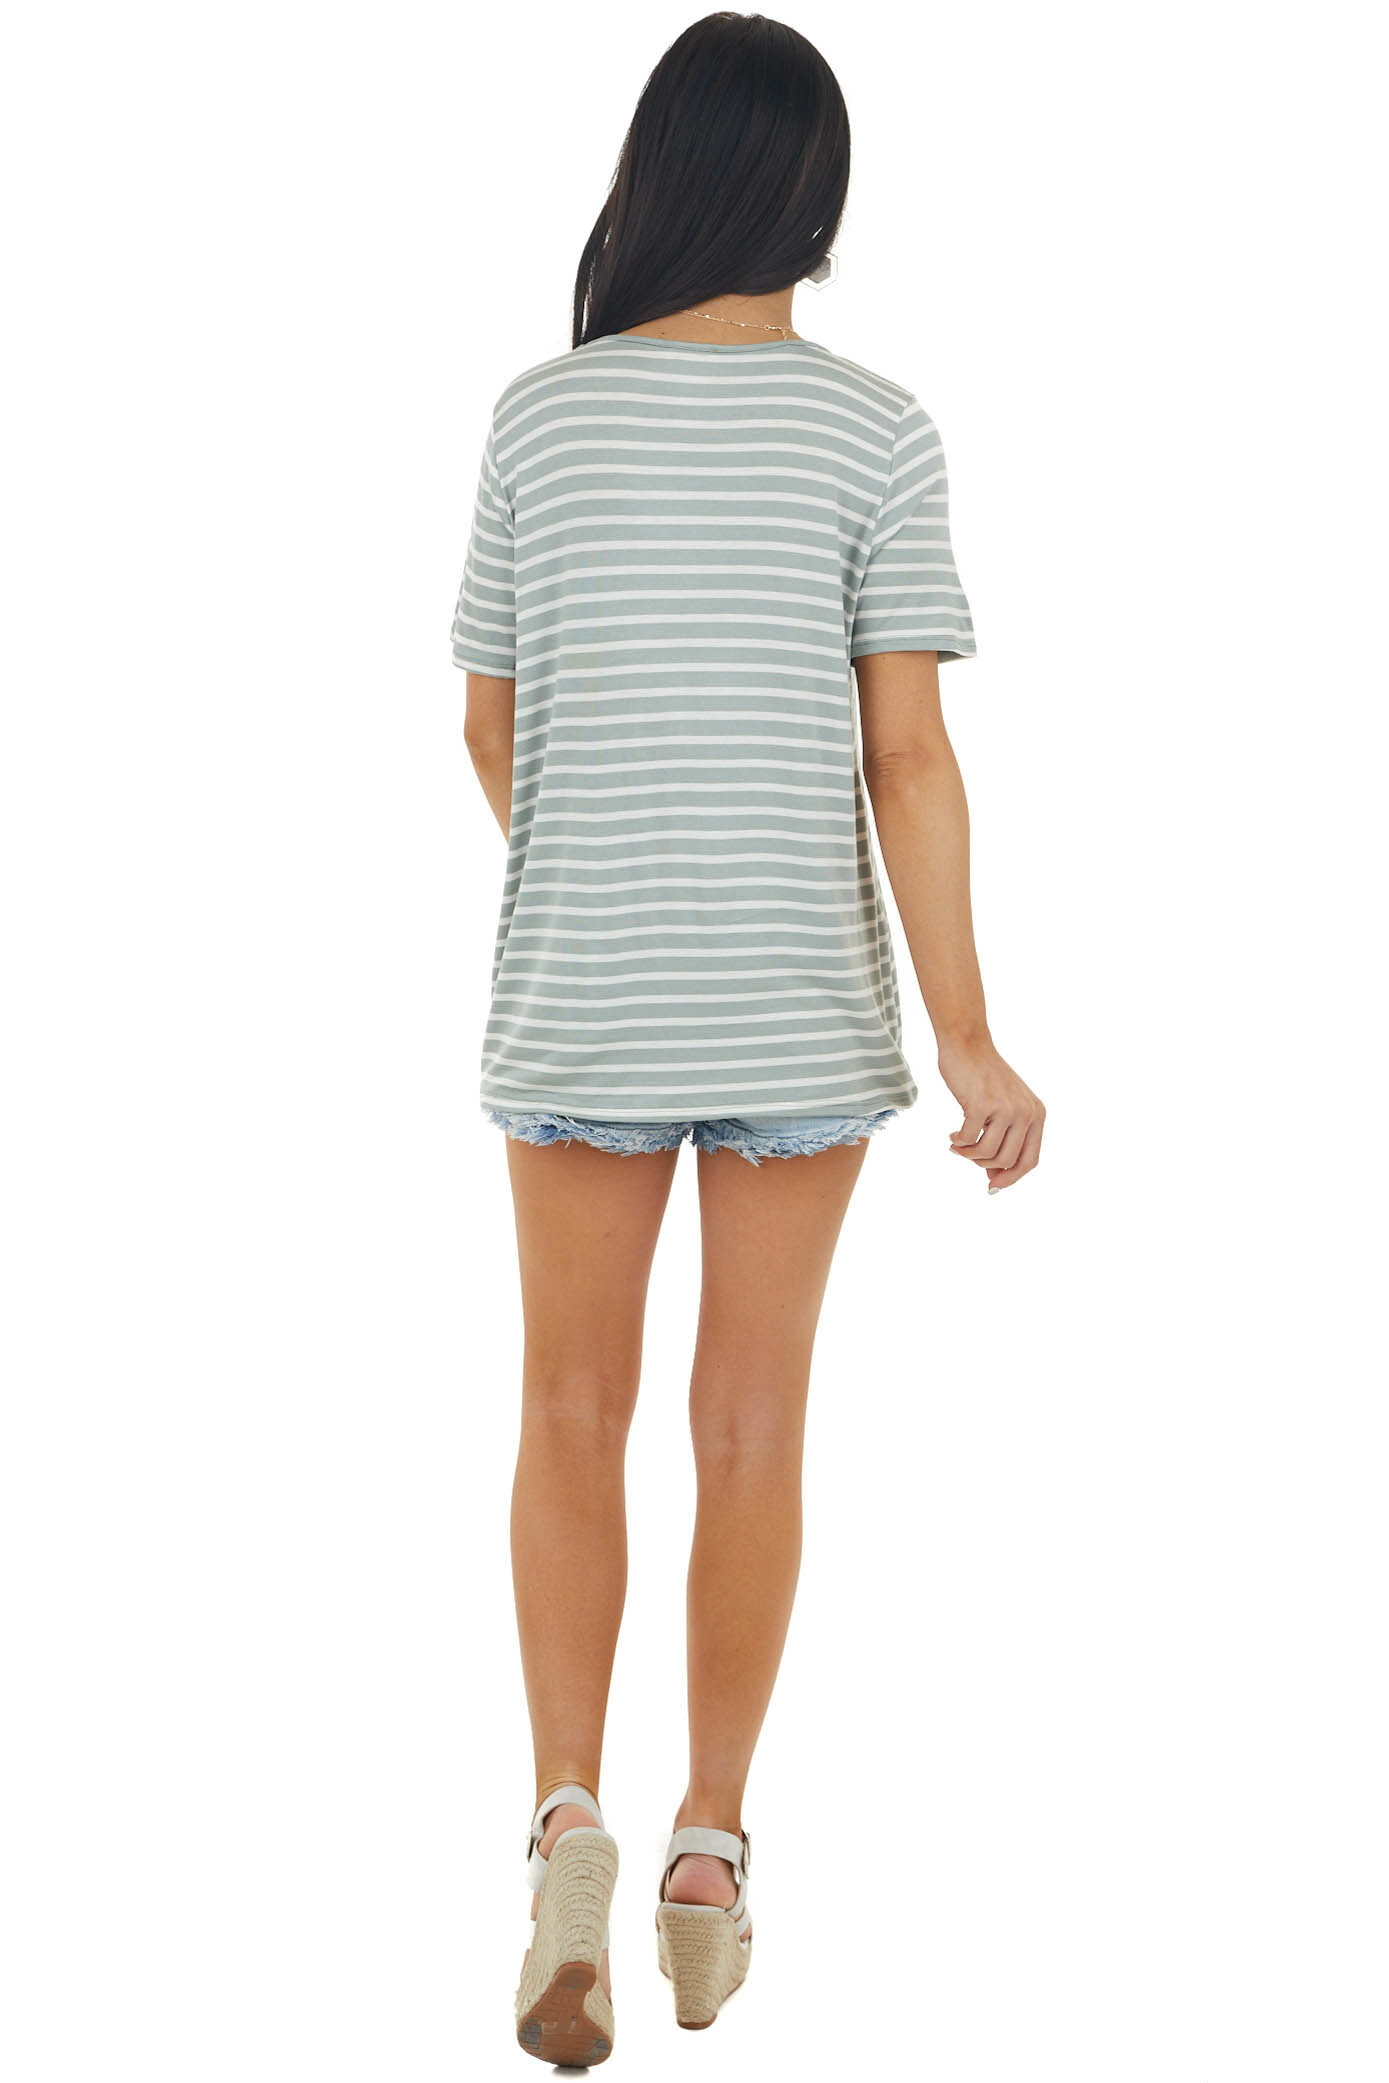 Pearl and Sage Striped Short Sleeve Knit Top with Pocket